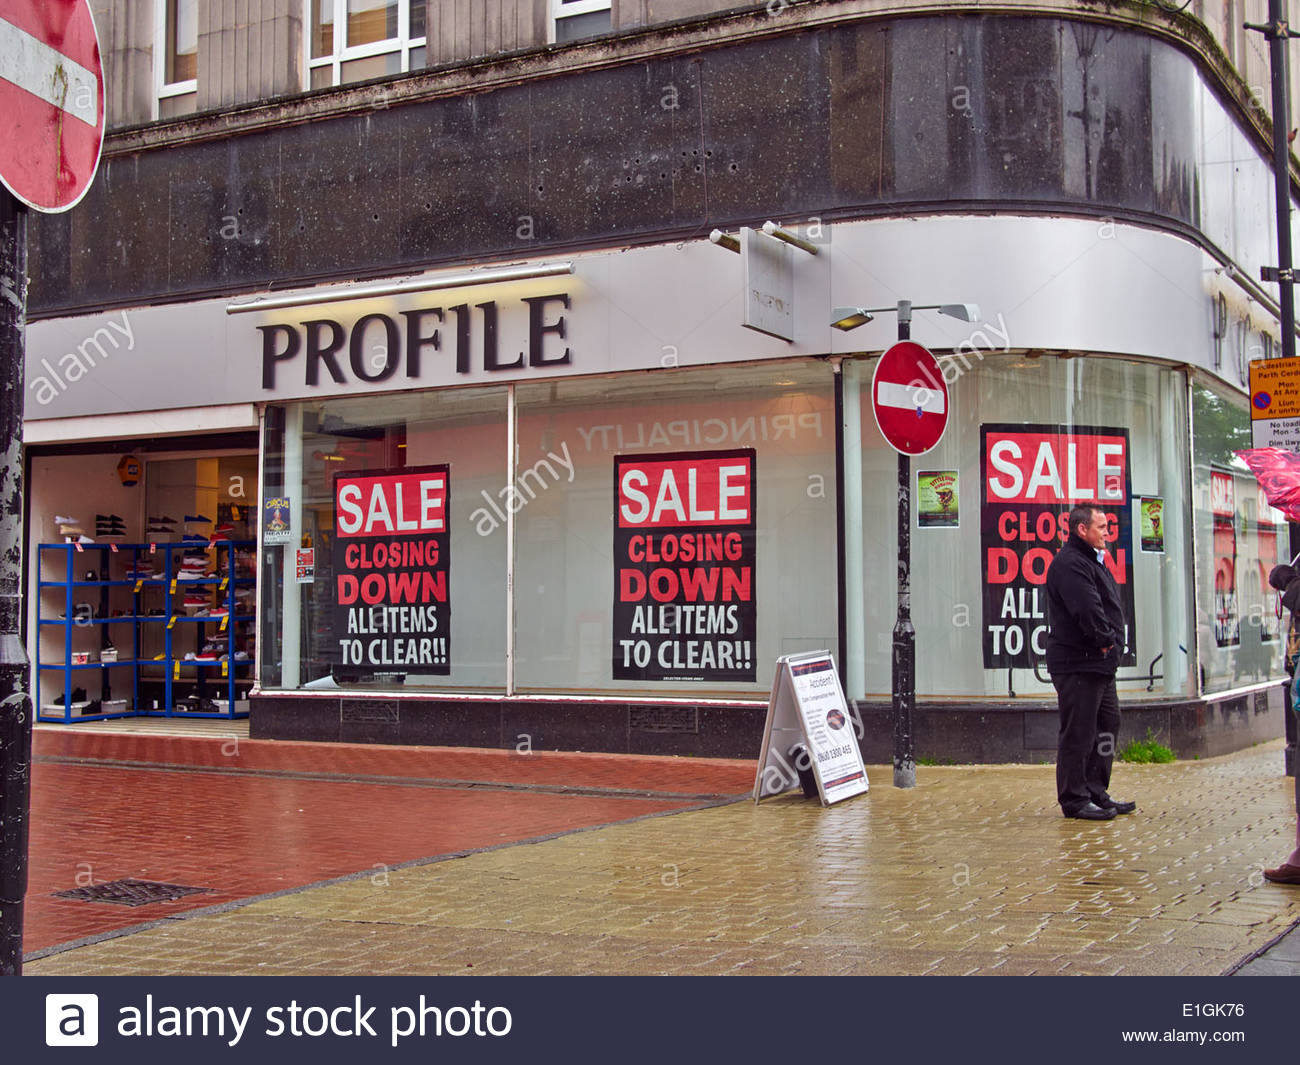 88517c80a9 closing down sale all items to clear in the profile store in green street  neath town centre south wales that has now closed down